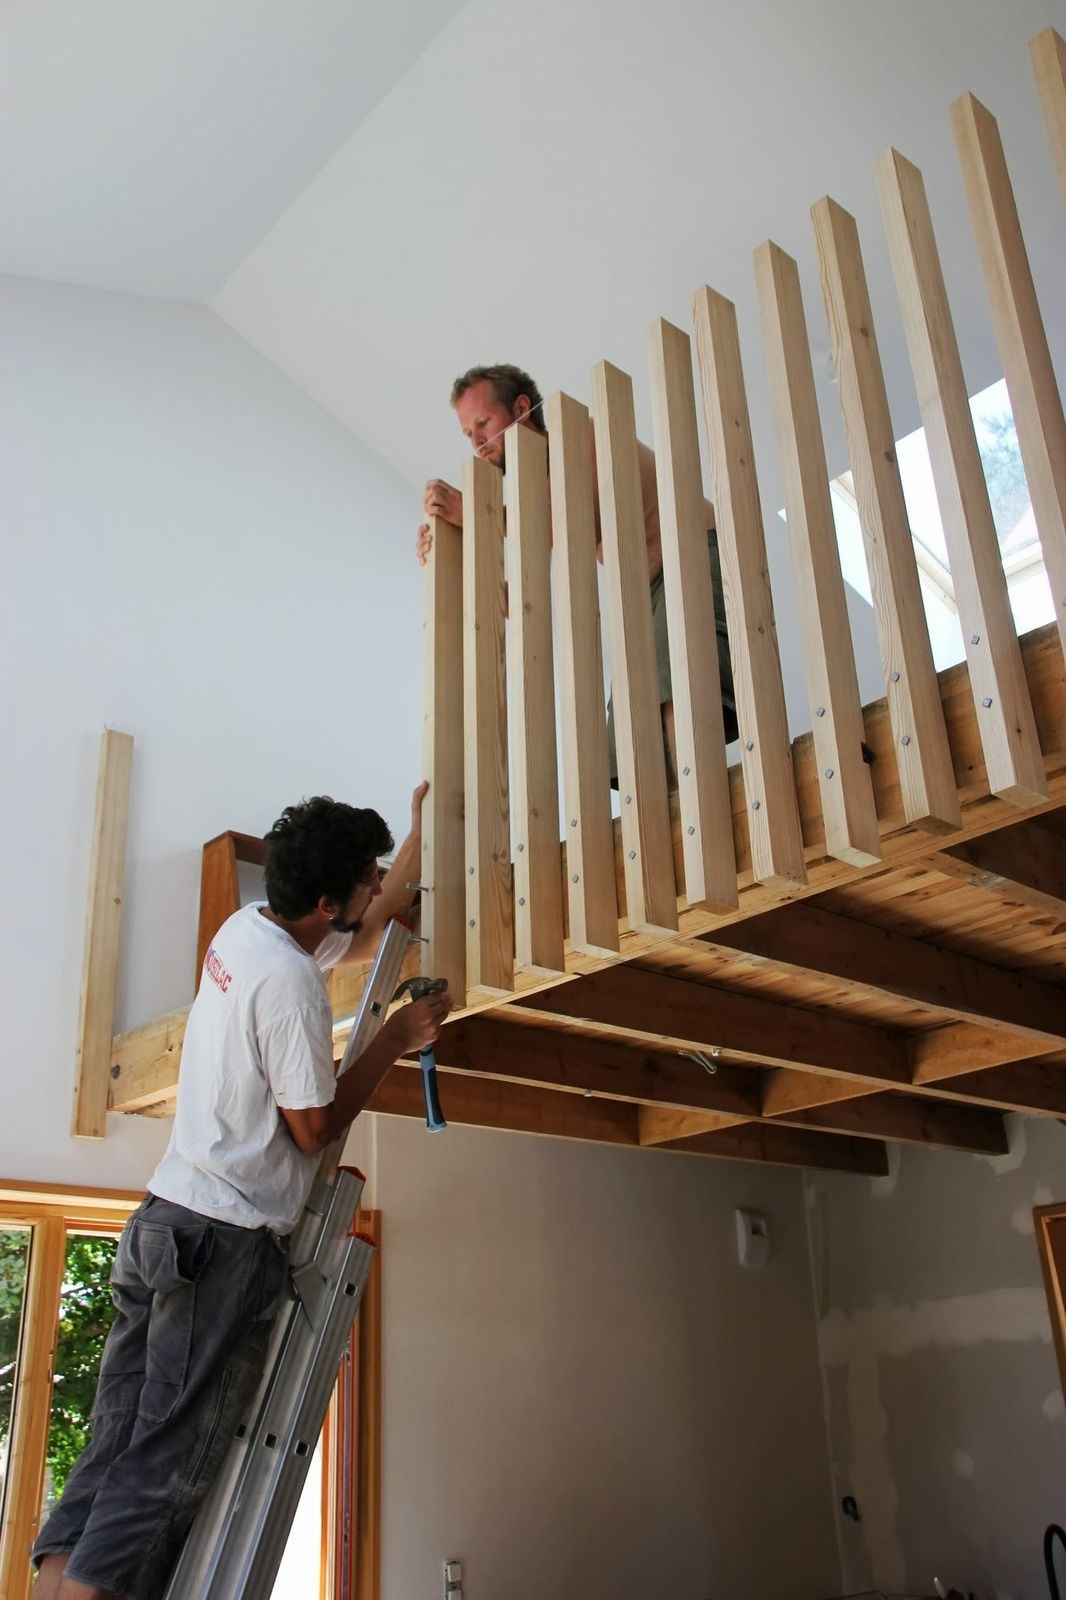 Week end garde corps en bois cr ation en bois - Escalier en bois design par archmongers ...